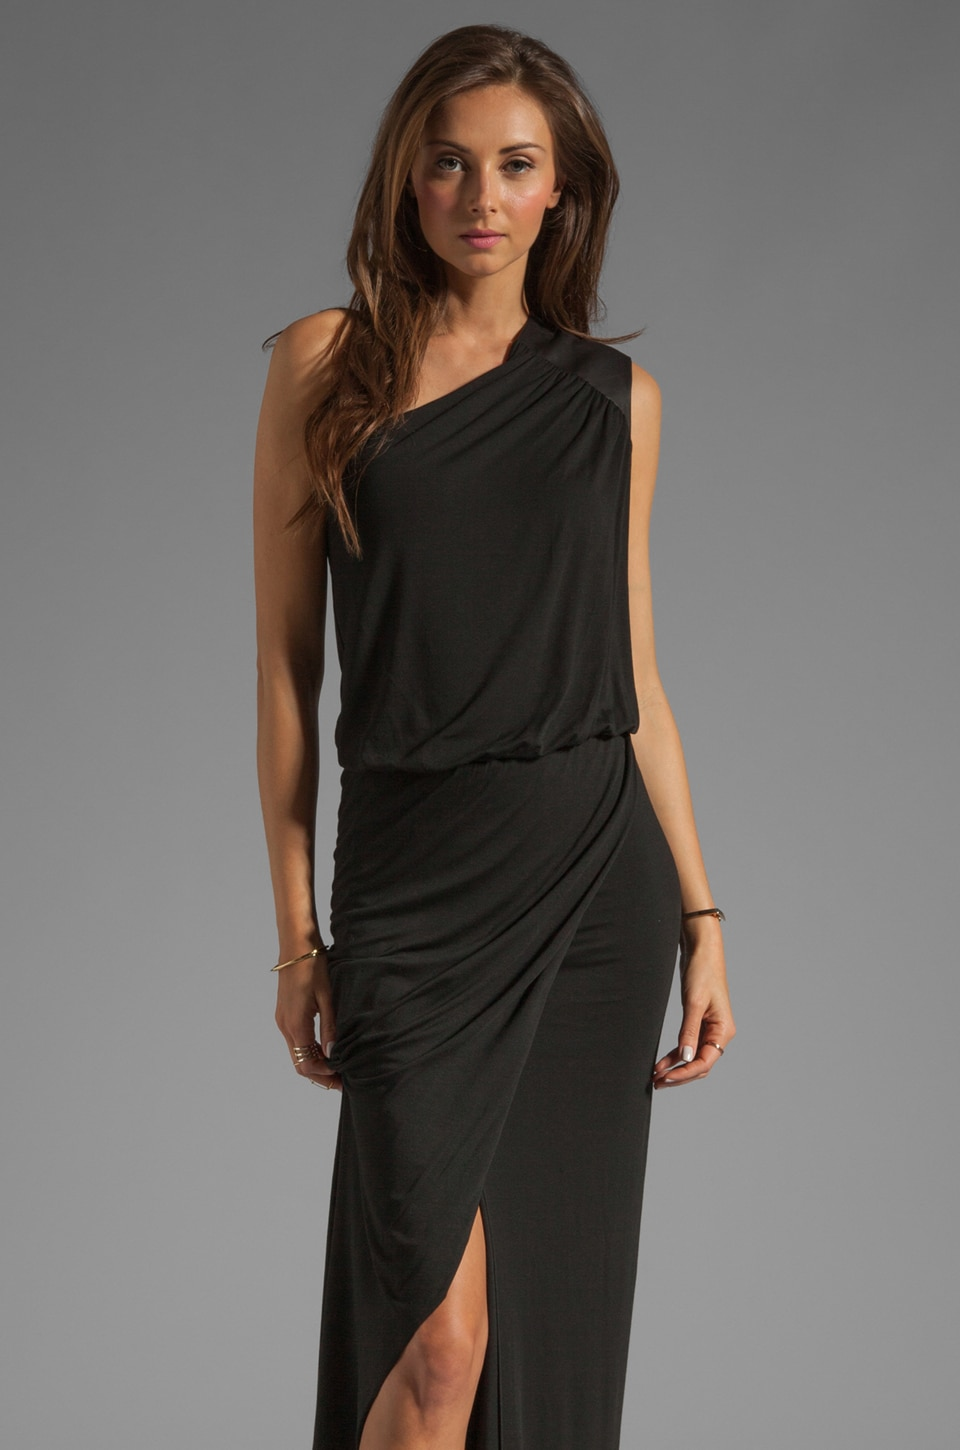 Mason by Michelle Mason Leather Trim Asymmetric Gown in Black